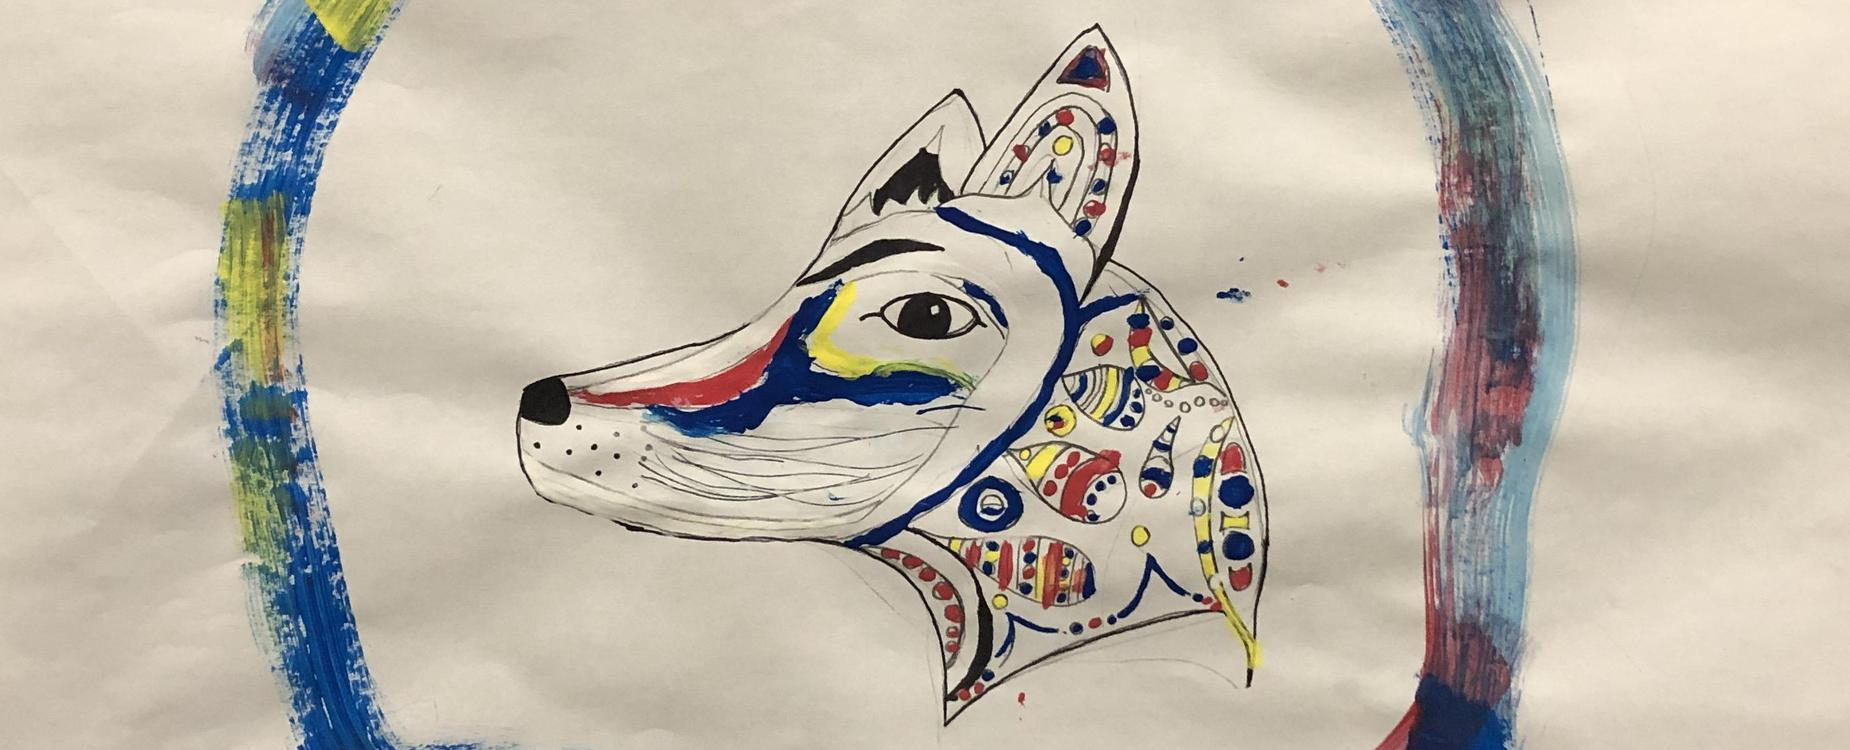 Indigenous style student painting of a fox or coyote